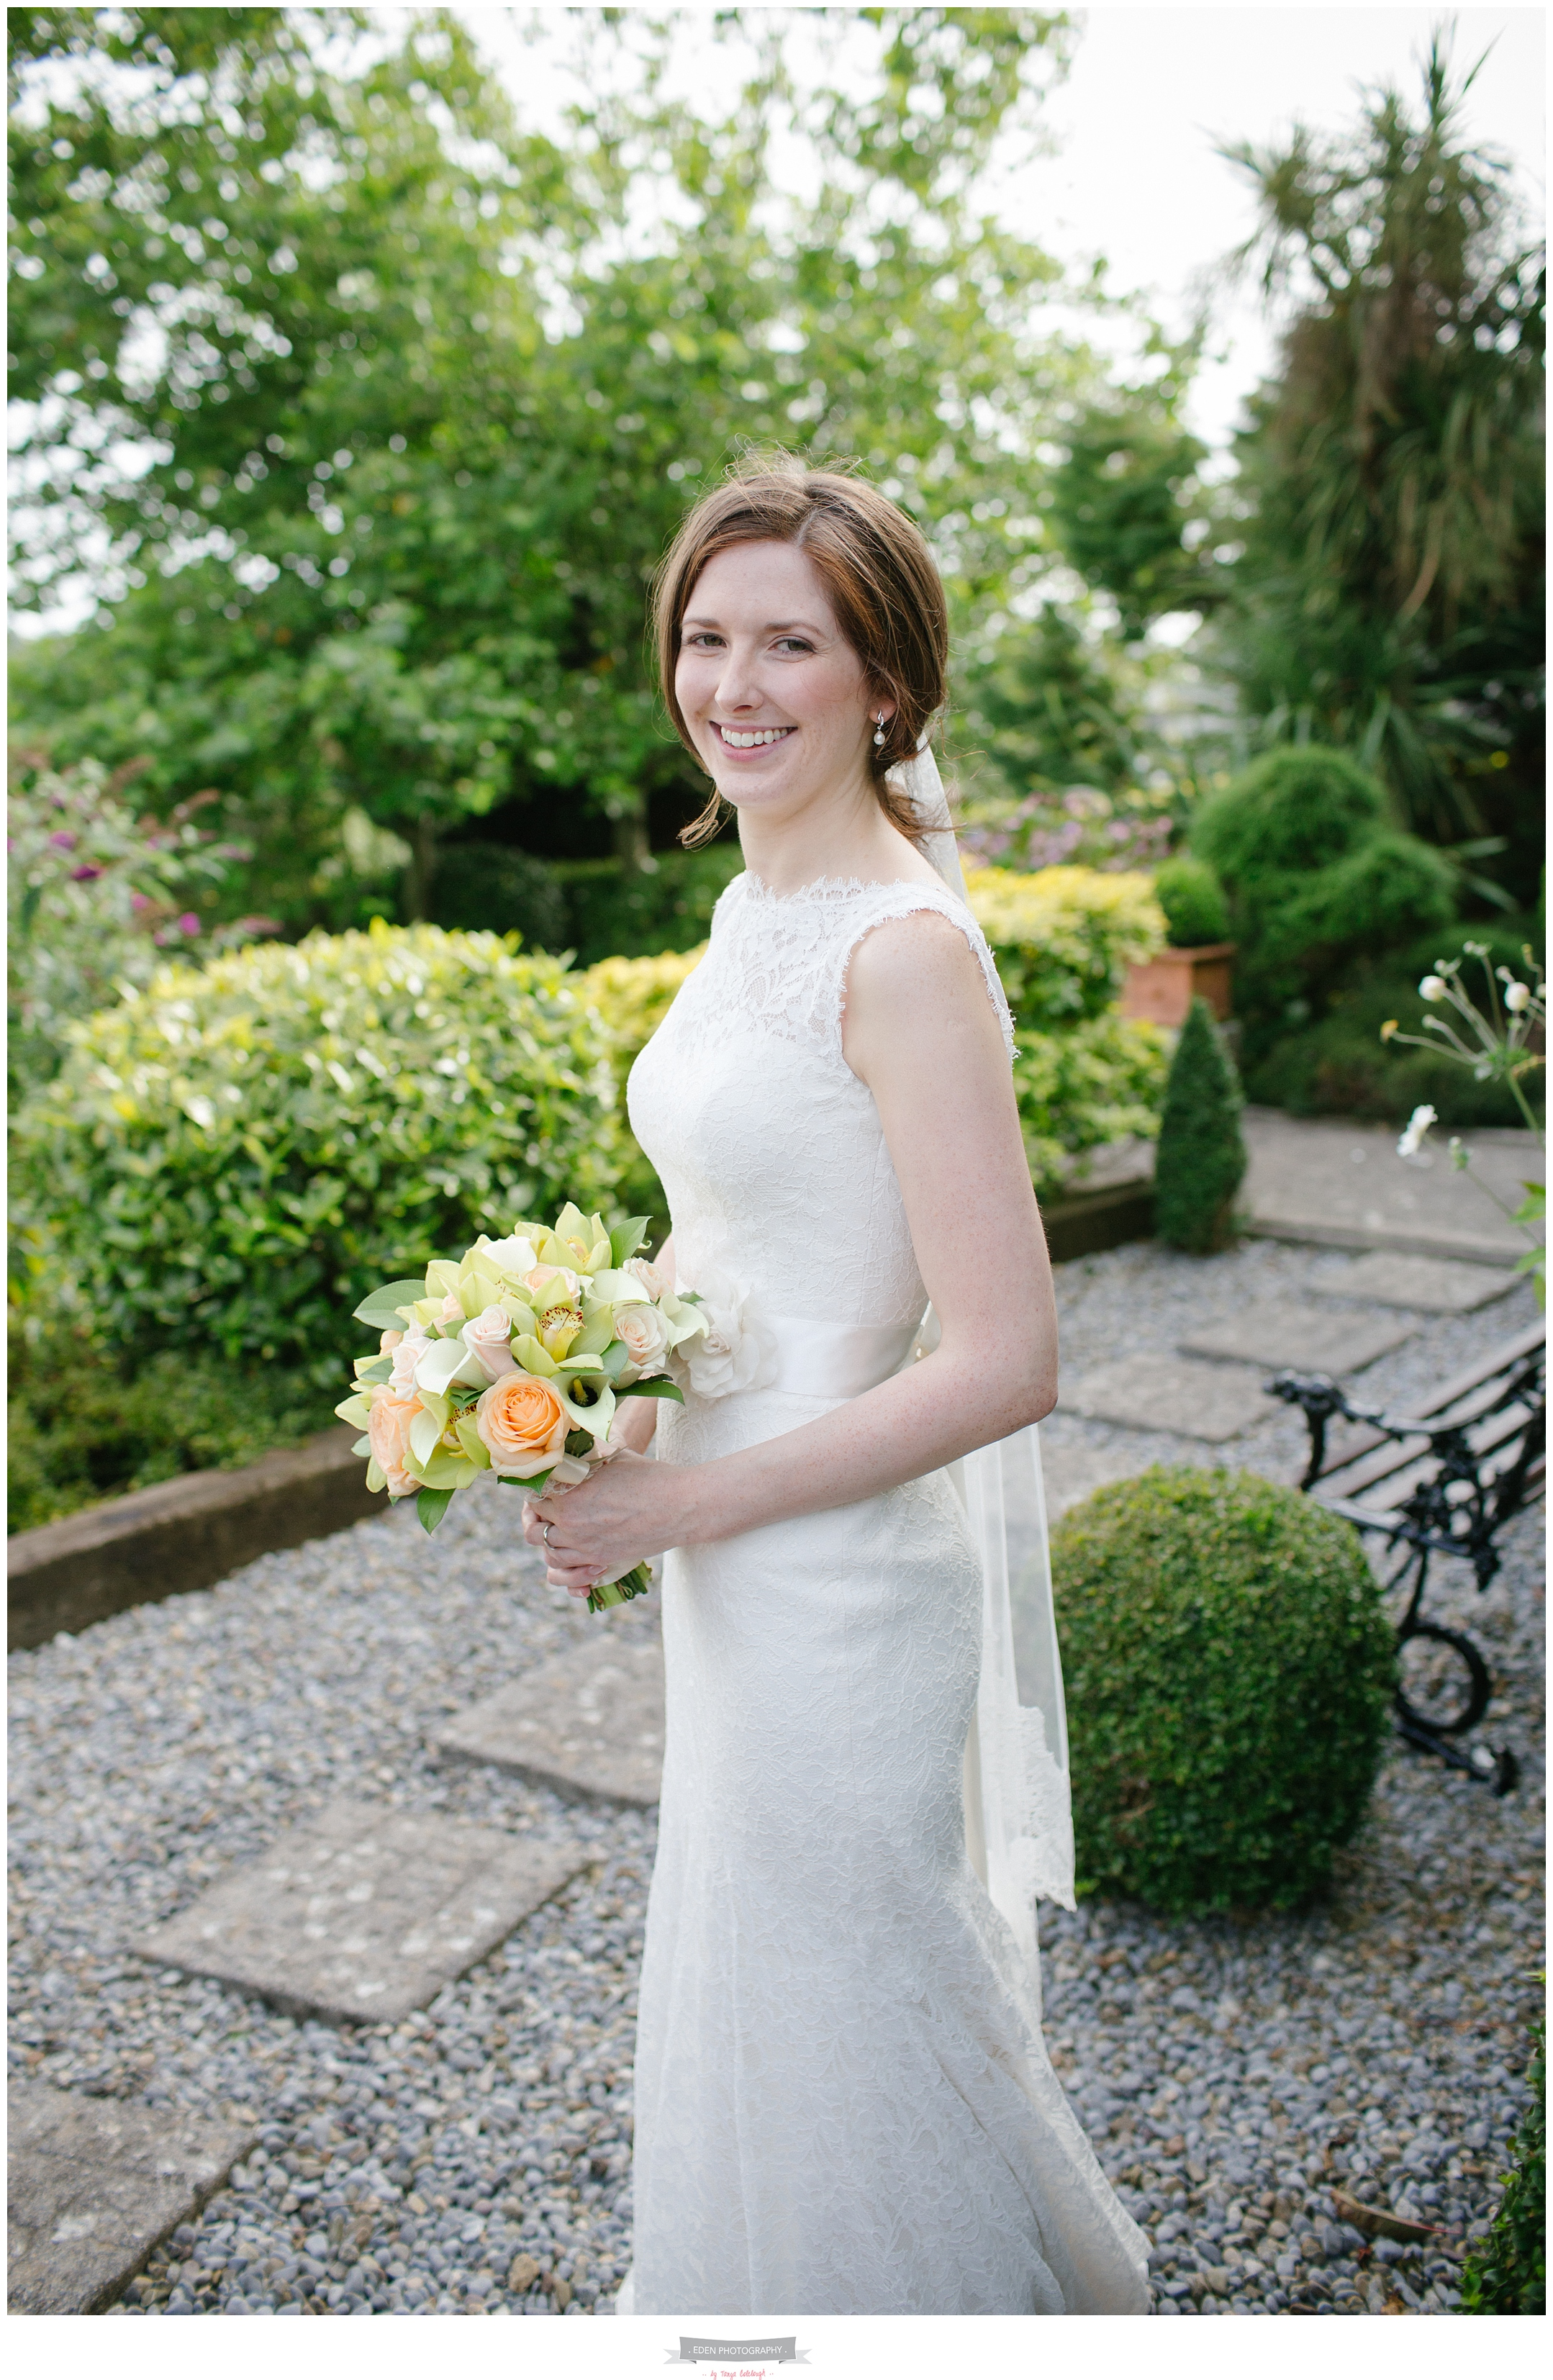 Faithlegg hotel wedding photographer